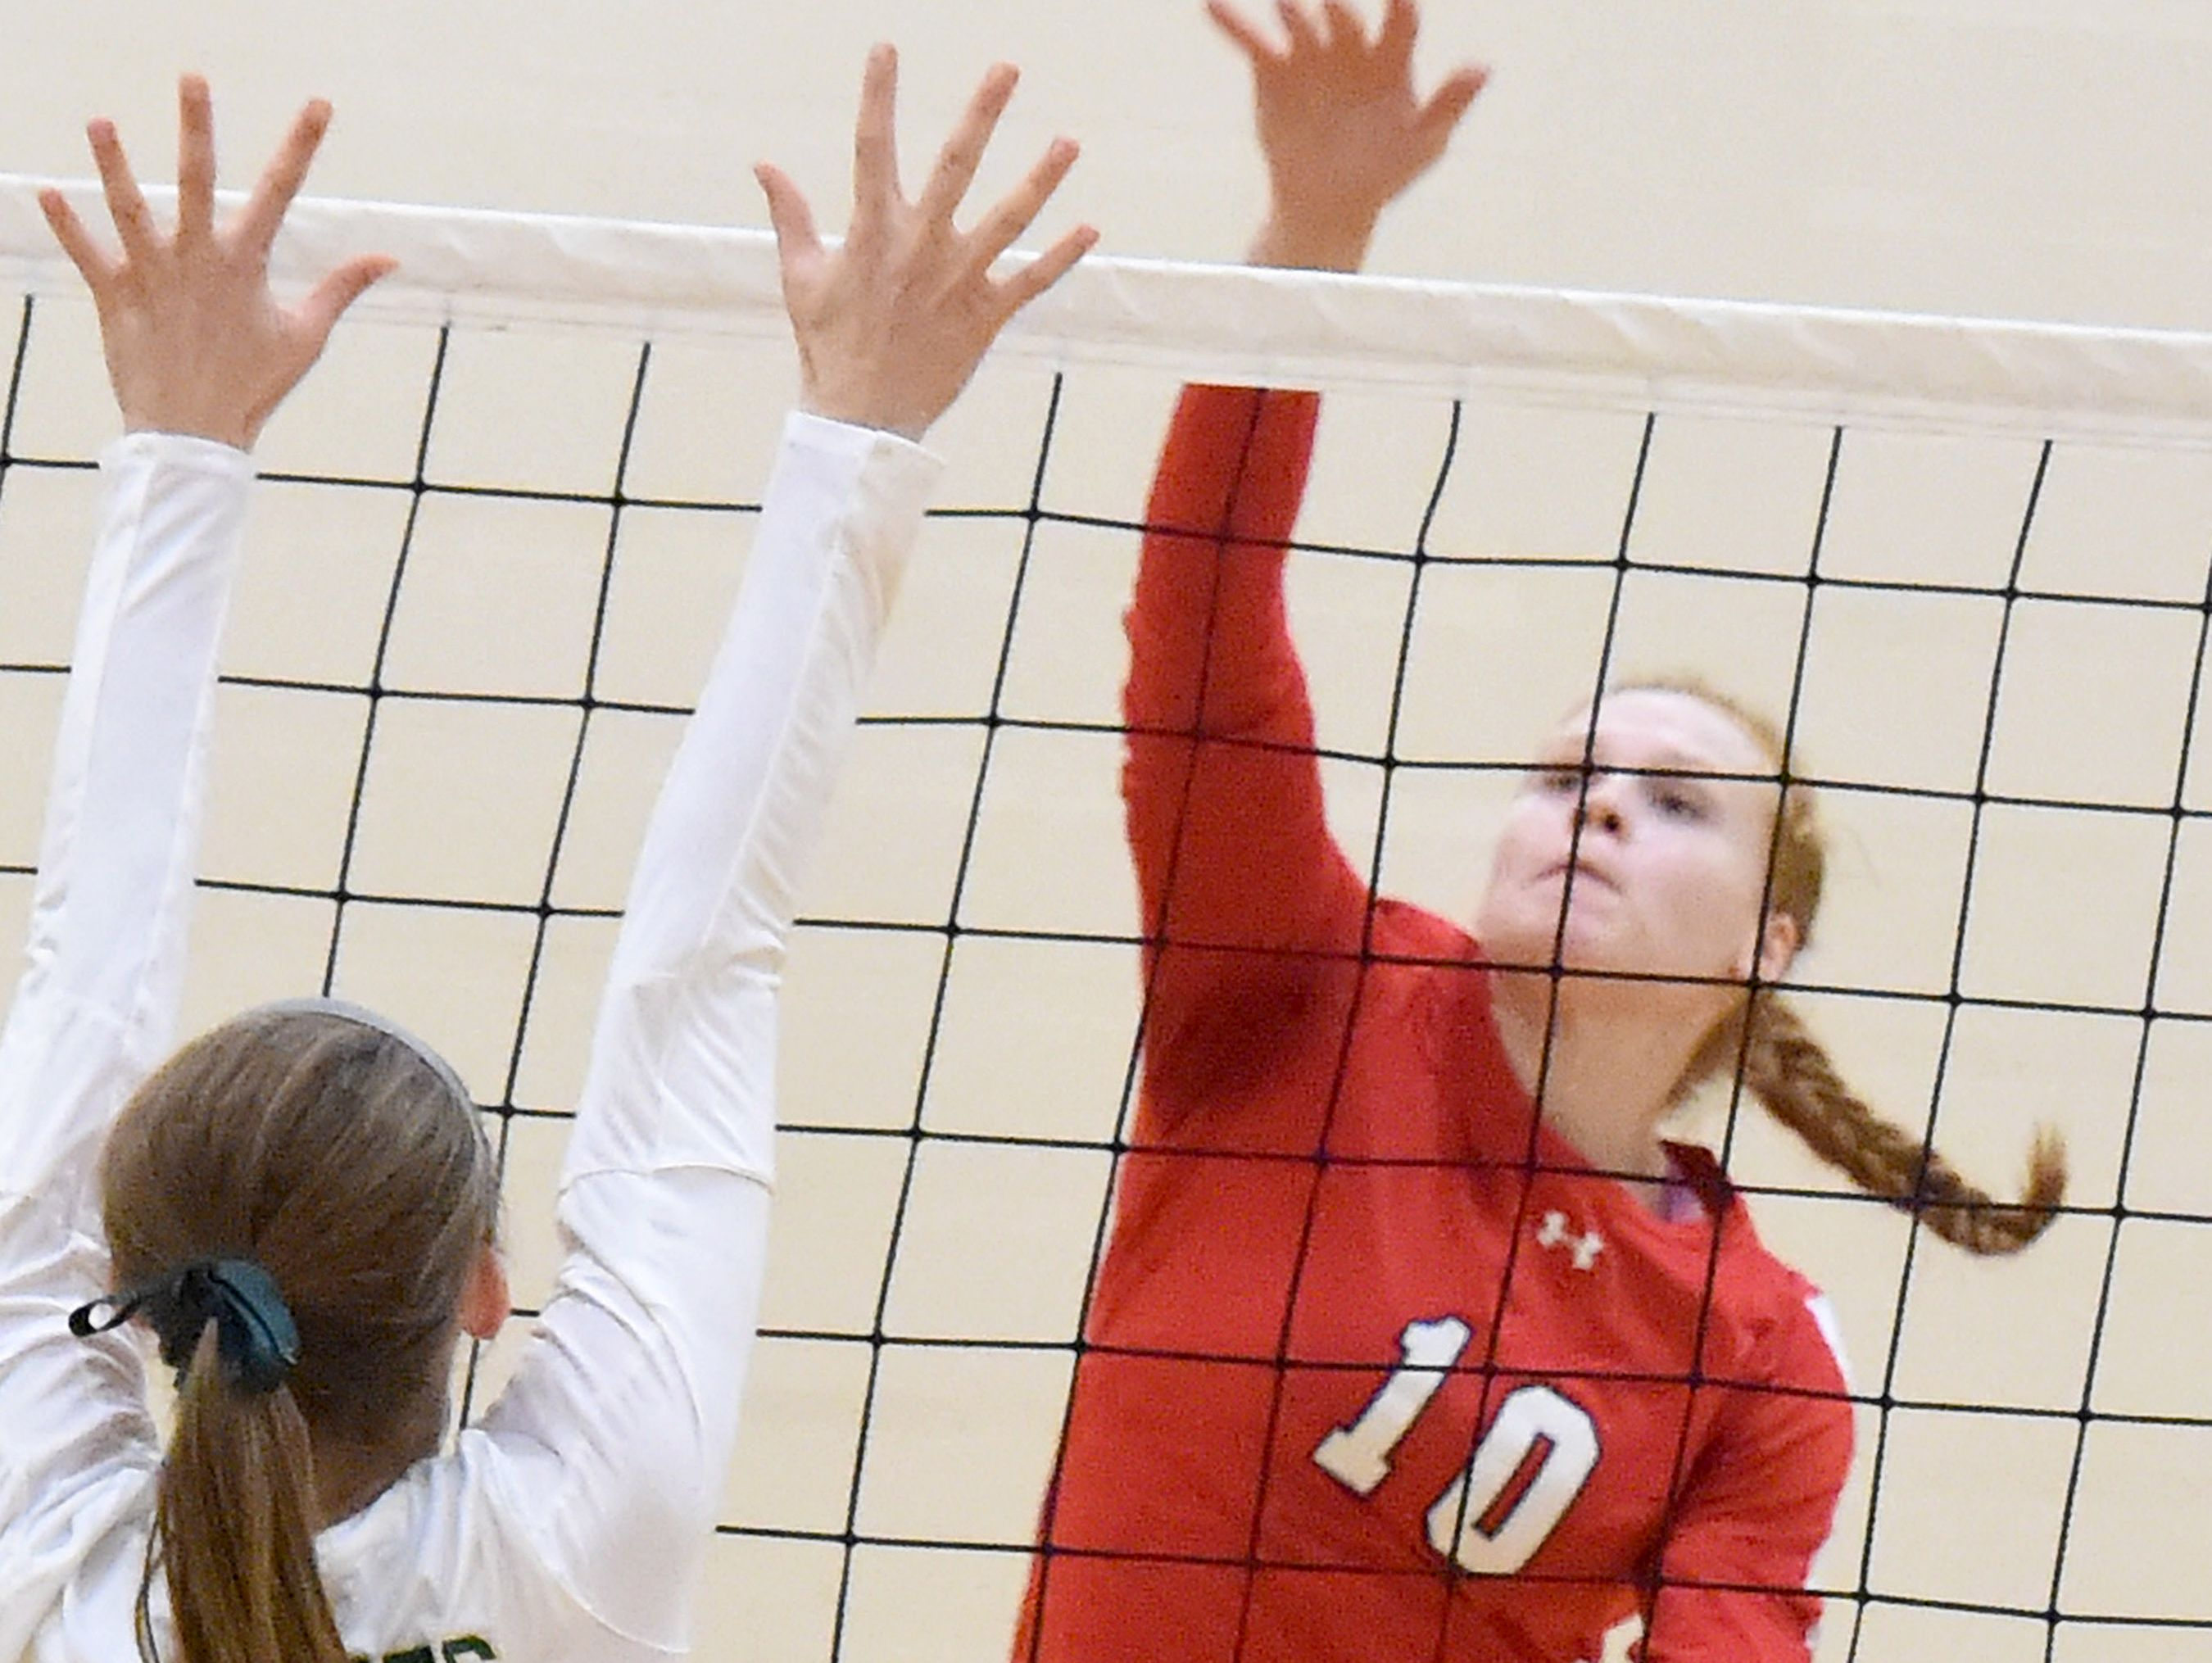 Riverheads' Blake Bartley spikes the ball across the net as Wilson Memorial's Emma Harrison tries to block during a volleyball match played in Fishersville on Thursday, Oct. 20, 2016.